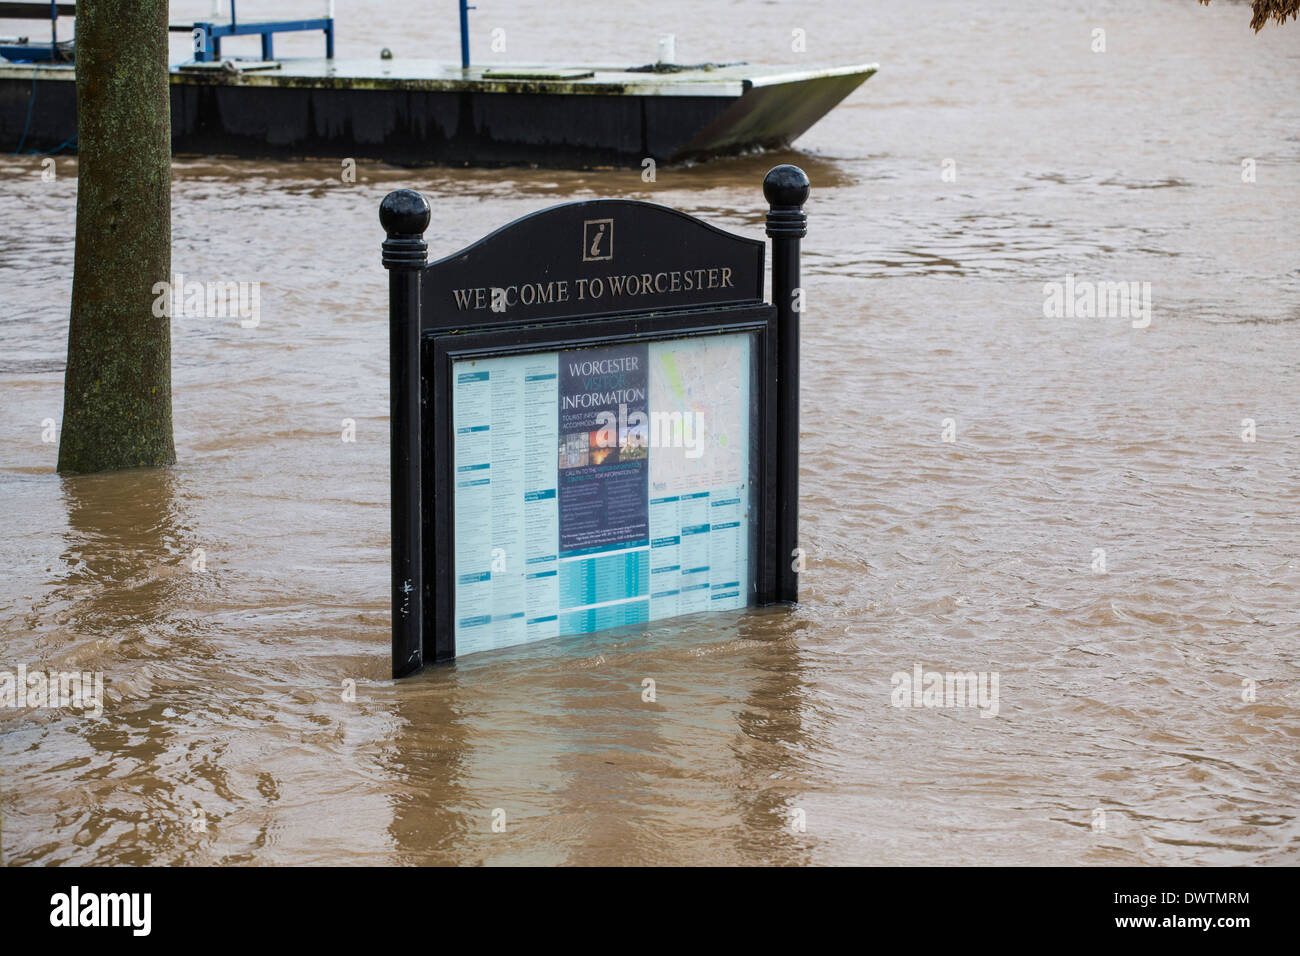 A tourist information sign in Worcester, UK, under water after the River Severn burst its banks - Stock Image